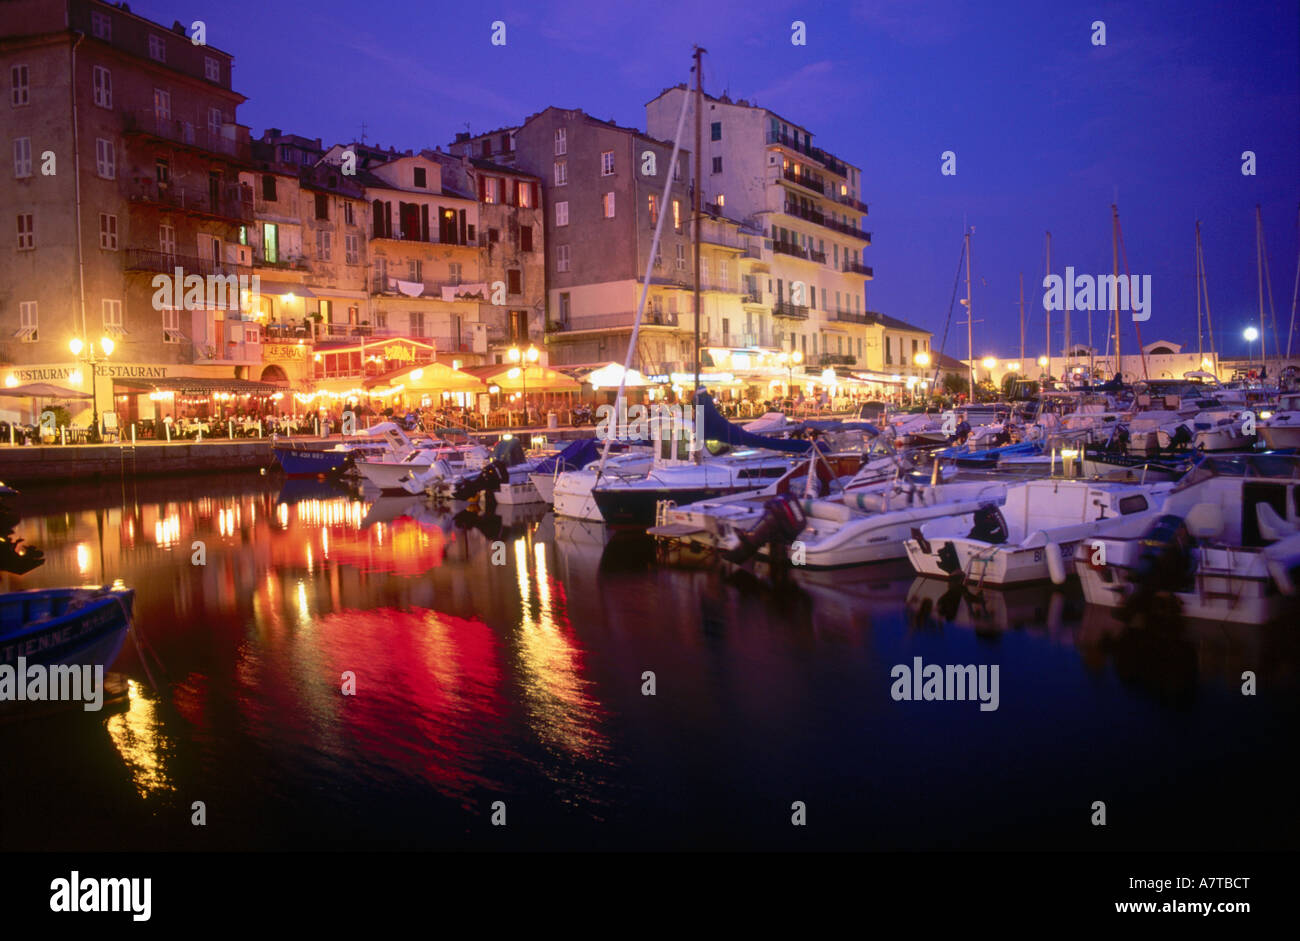 Cafe in the vieux port terra vecchia bastia corsica france stock - Boats Moored At Harbor At Night Bastia Corsica France